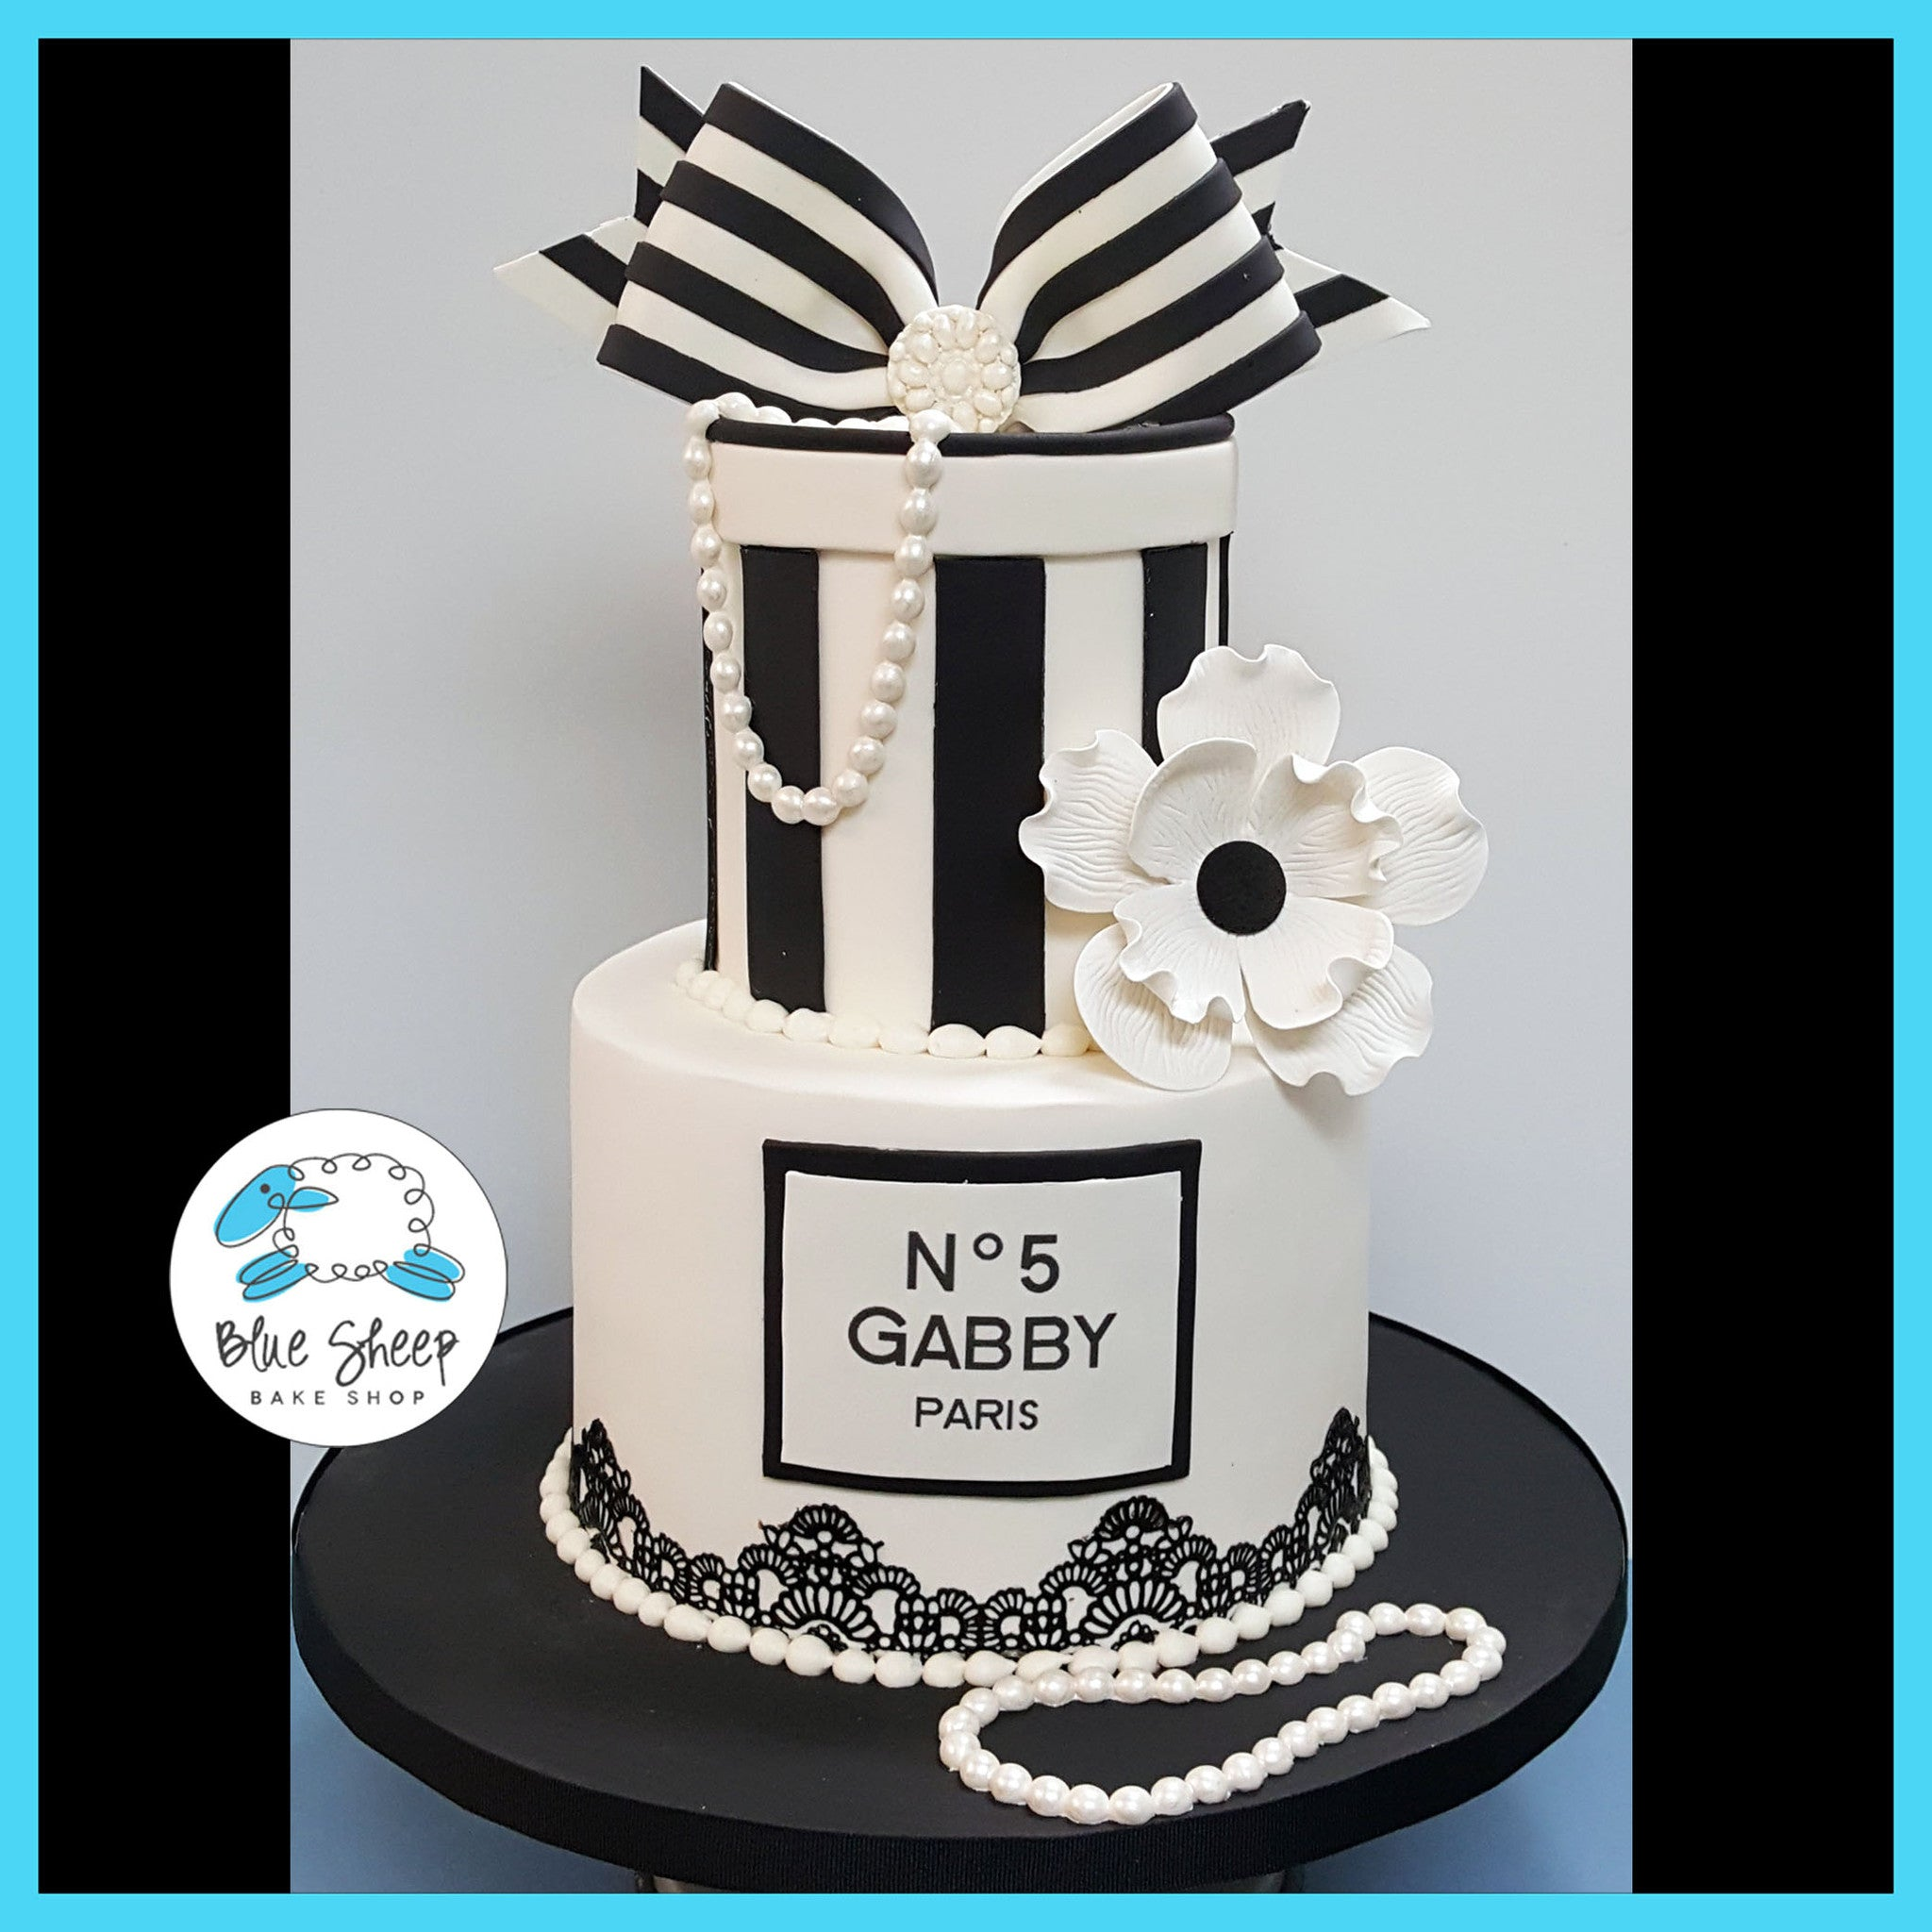 Chanel No 5 Birthday Cake Blue Sheep Bake Shop